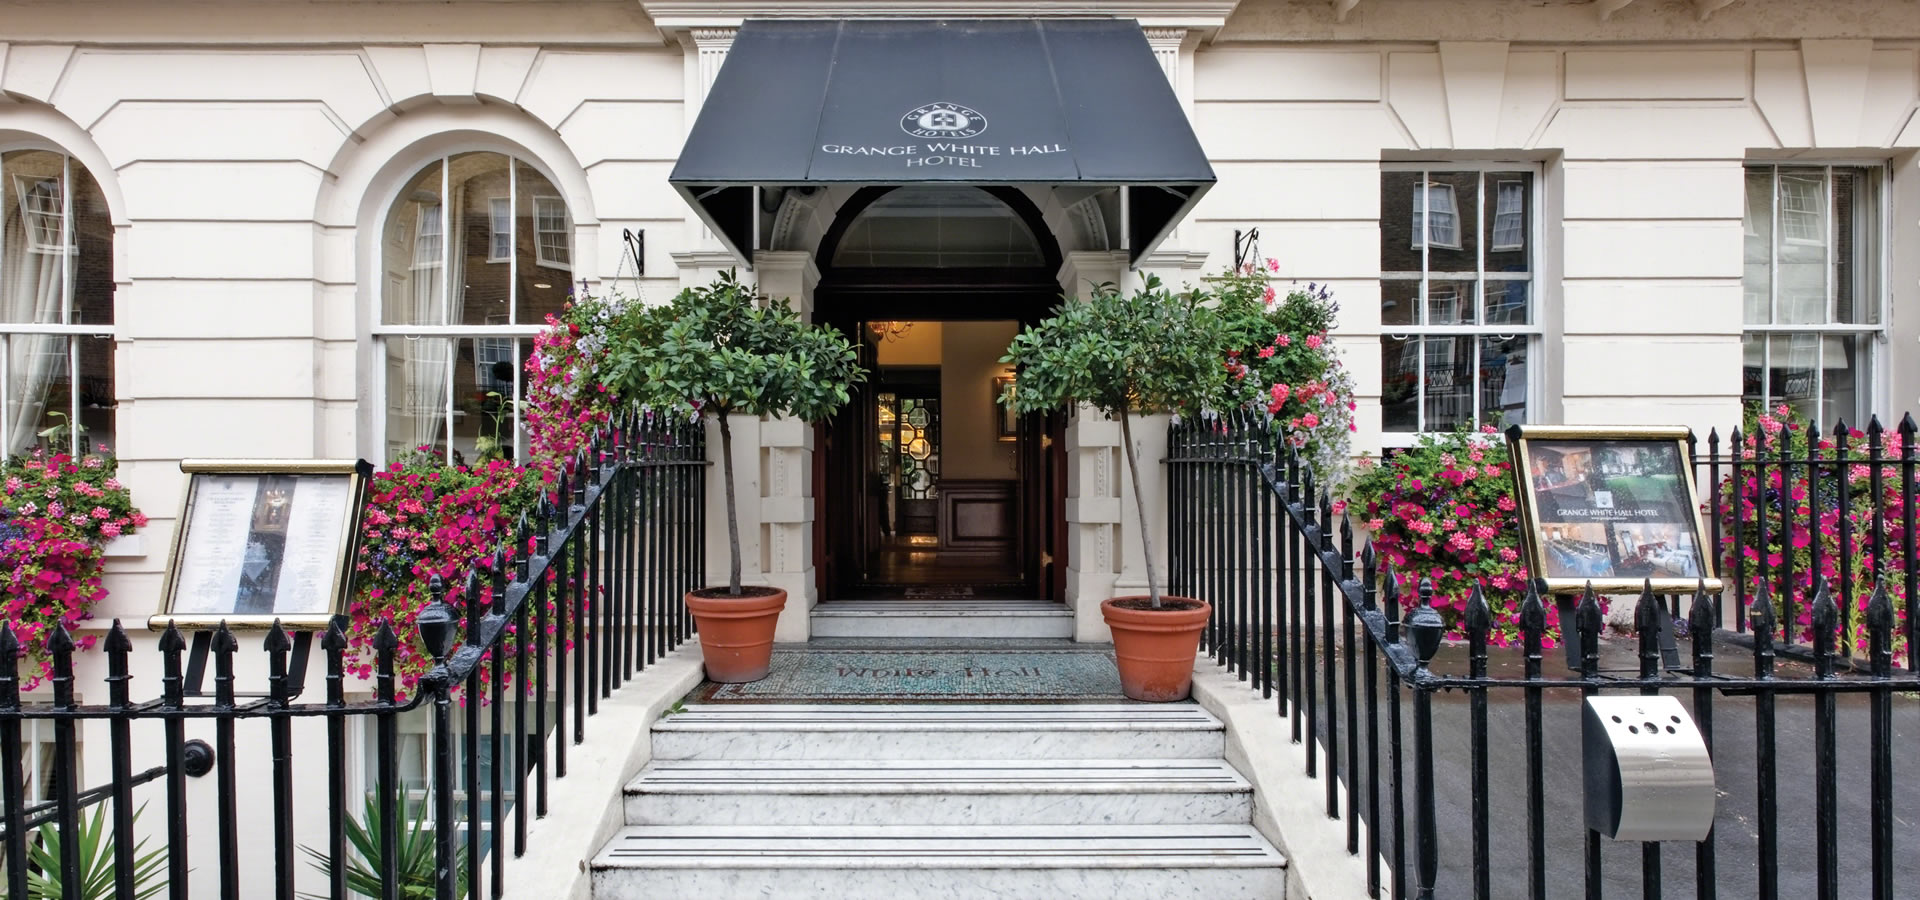 Hotel Georgian House Londra grange white hall hotel | 4 star boutique hotel bloomsbury